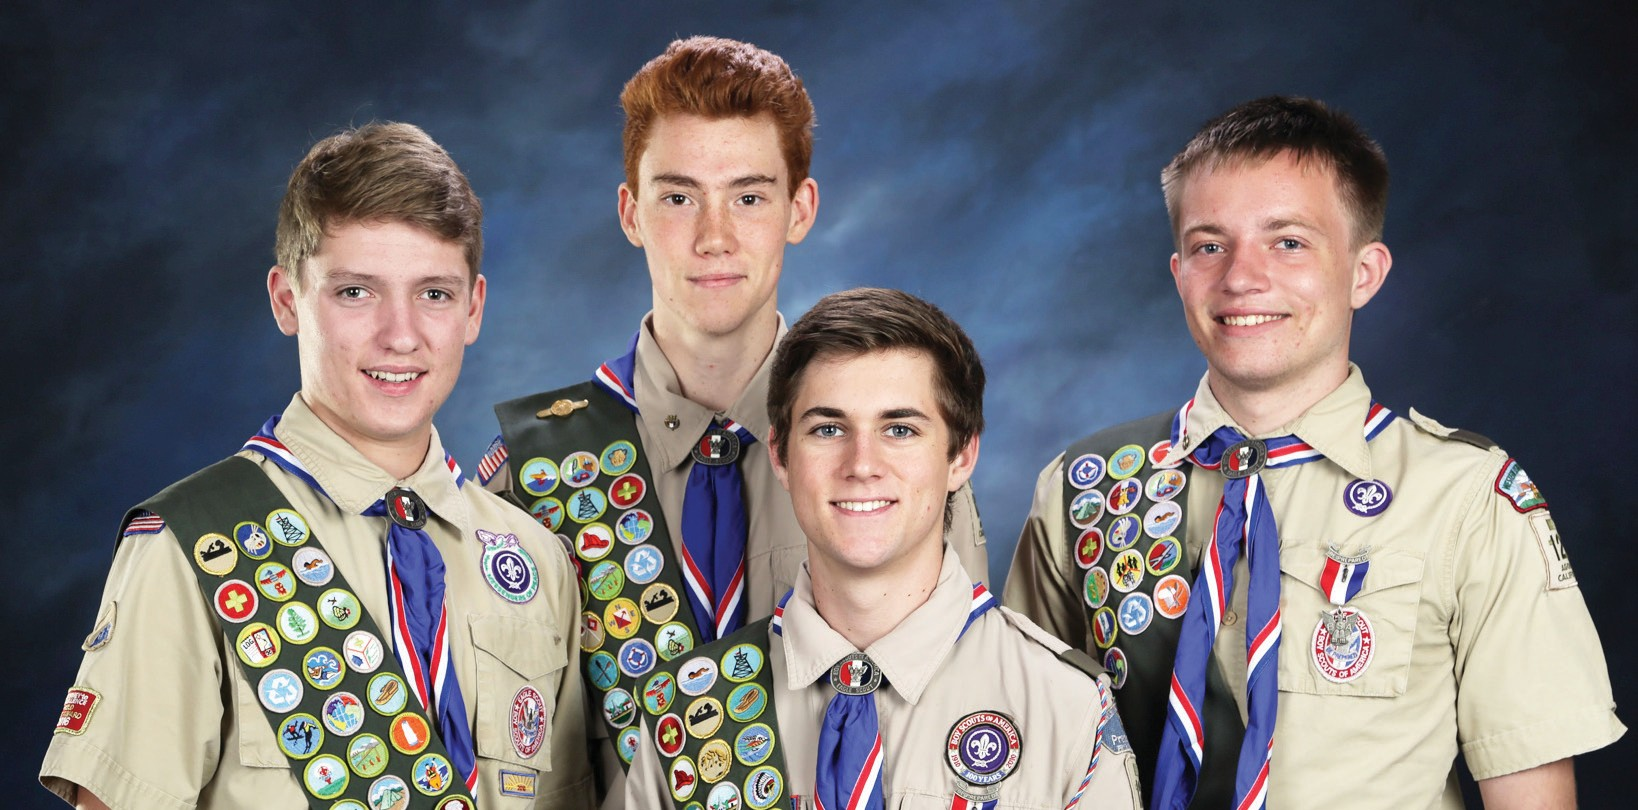 TOP HONOR—From left are new Eagle Scouts Connor Burns, William Fritz, Nicholas Mrachek and Bailey Man of Troop 127 from Agoura Hills. Courtesy photo